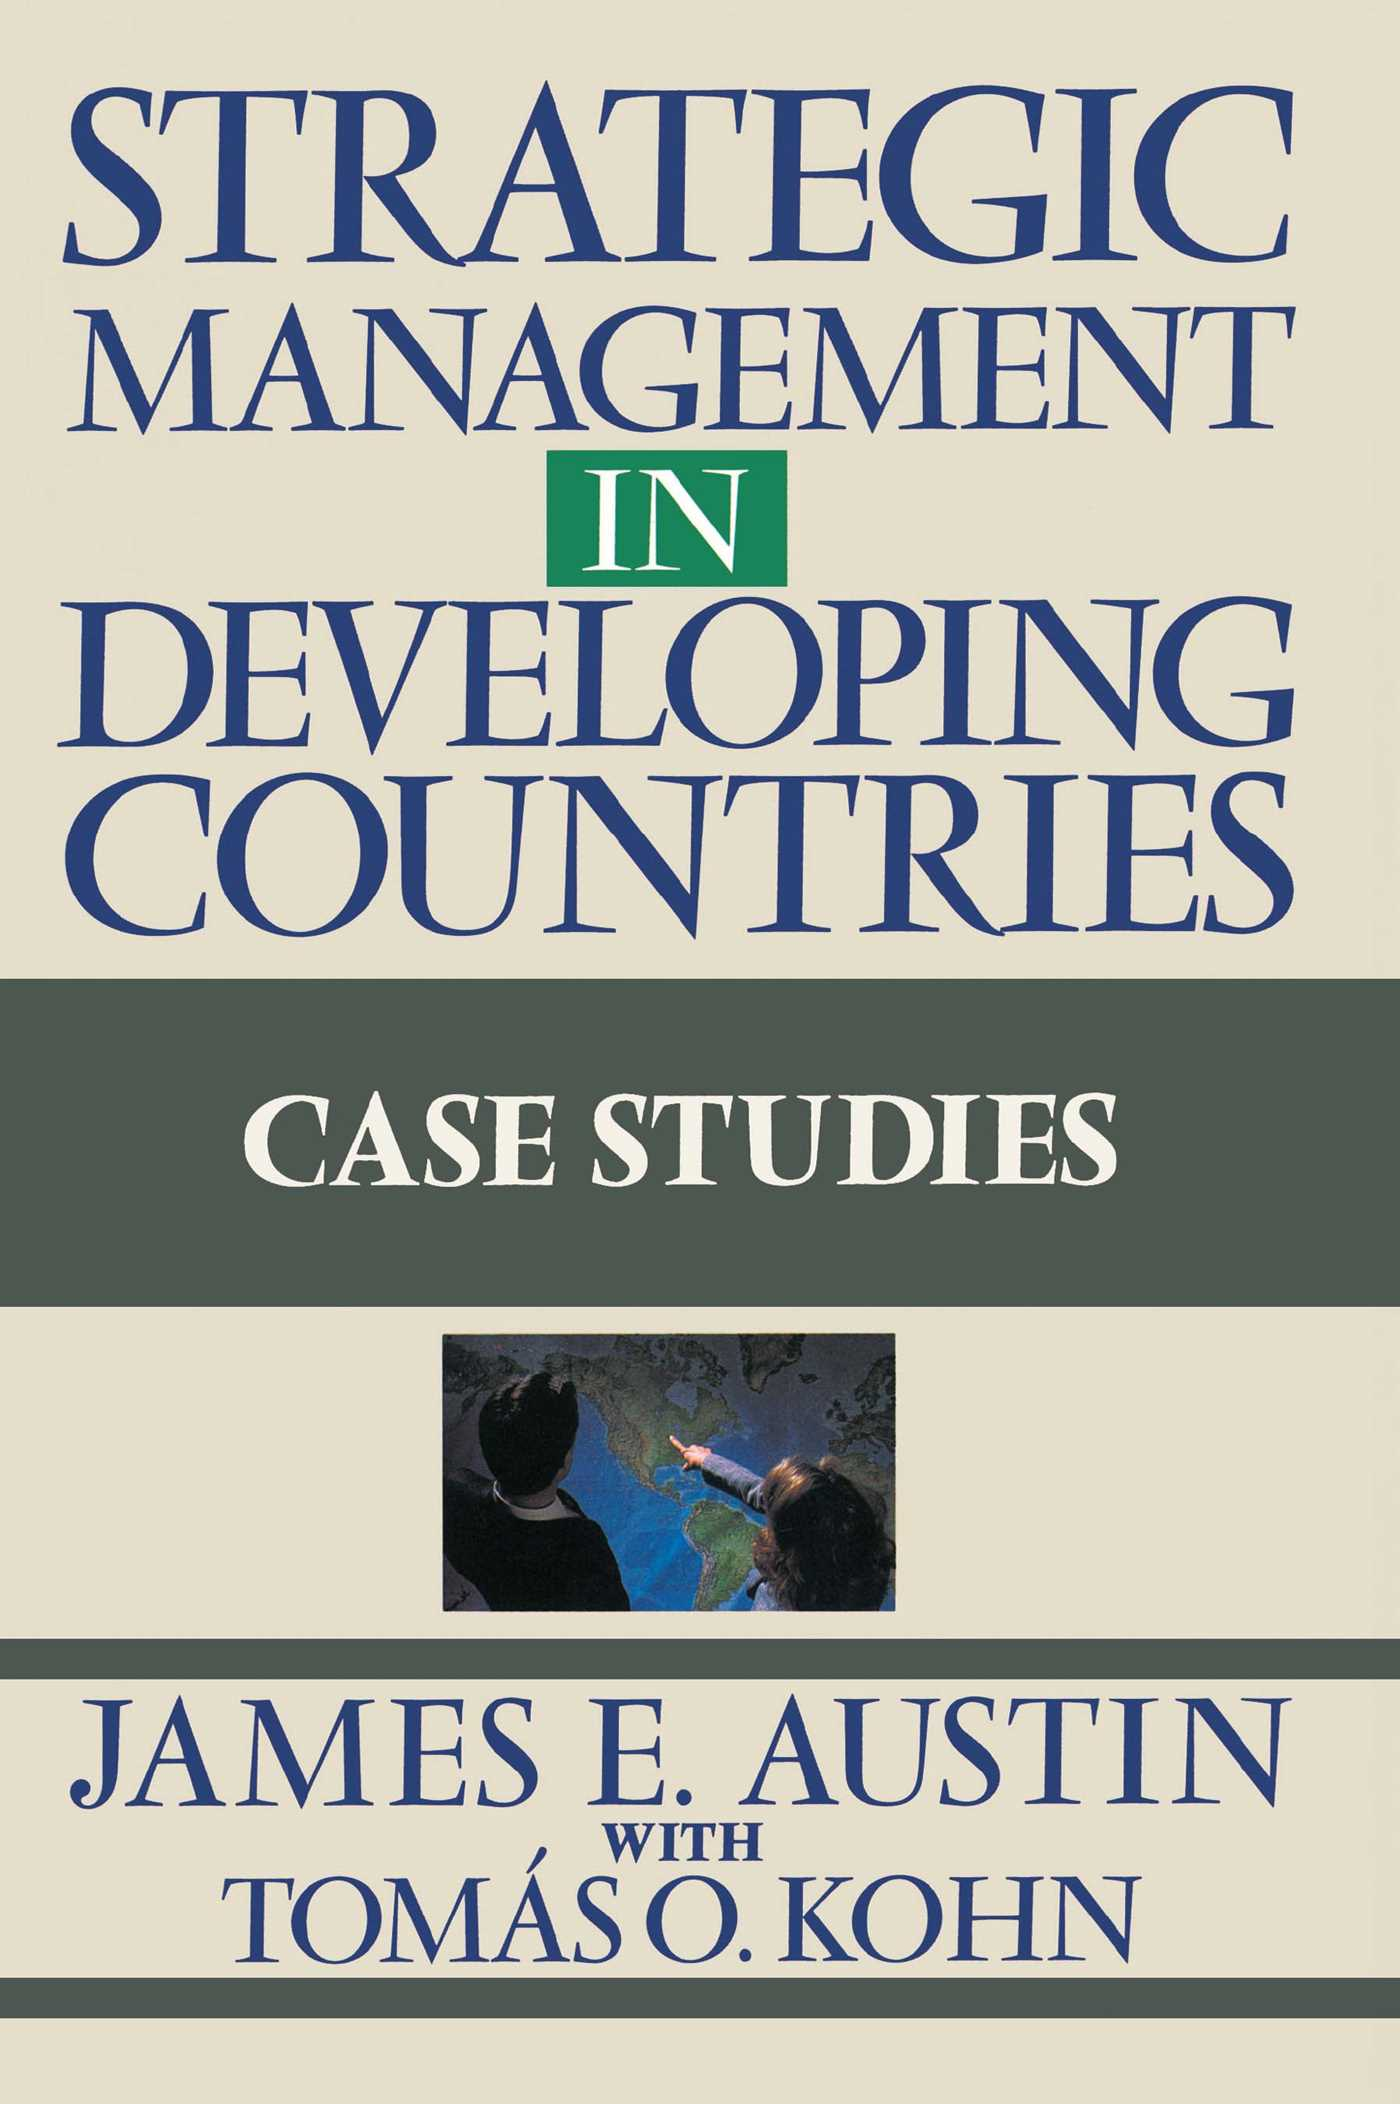 Strategic management in developing countries 9780684863702 hr